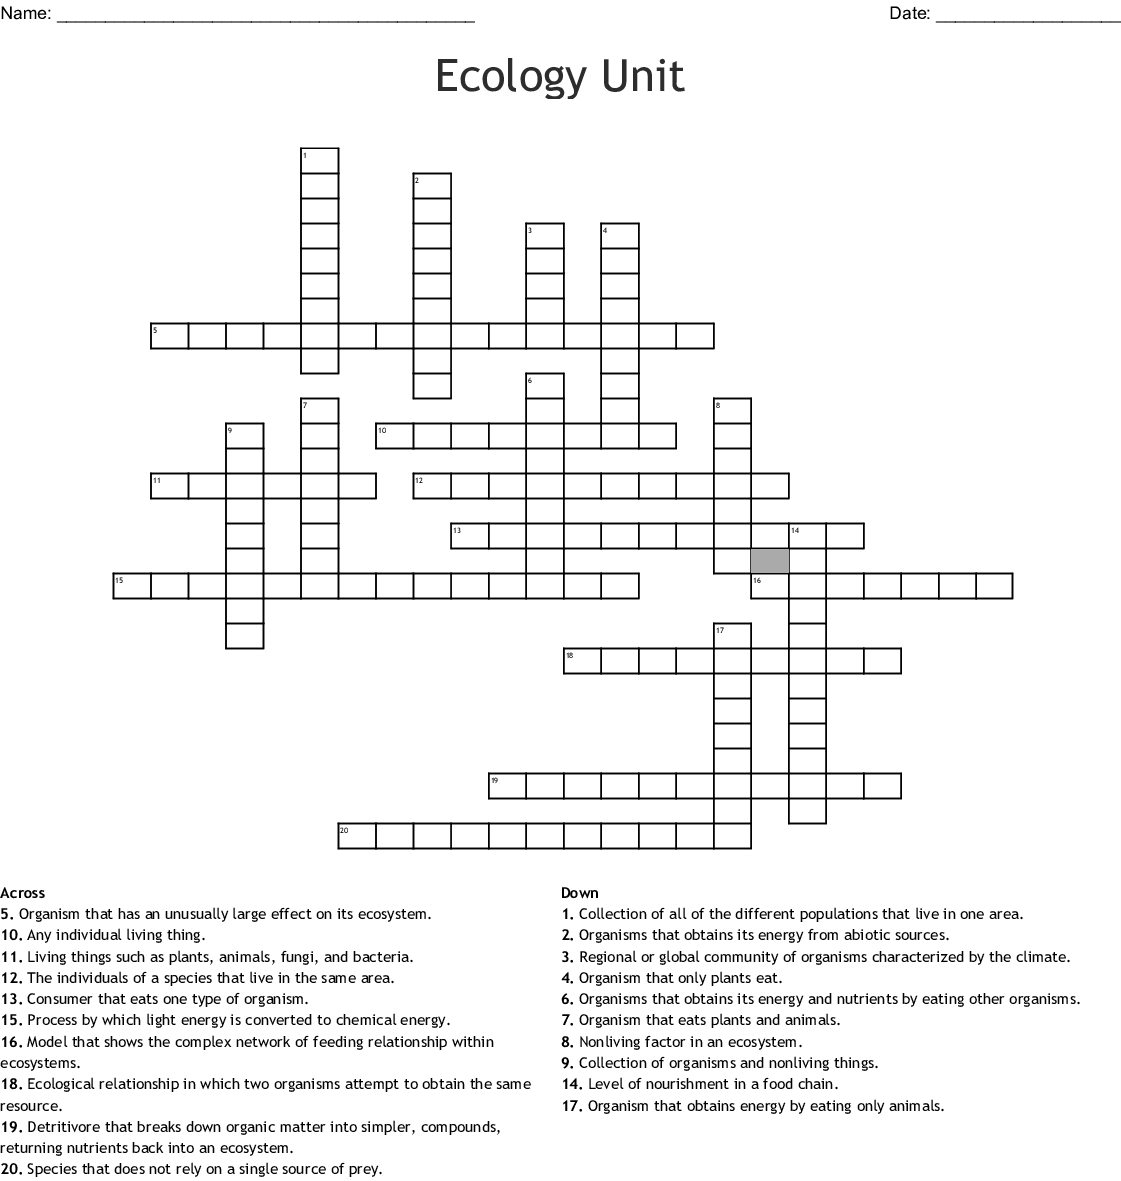 Ecology Unit Review Worksheet Answers